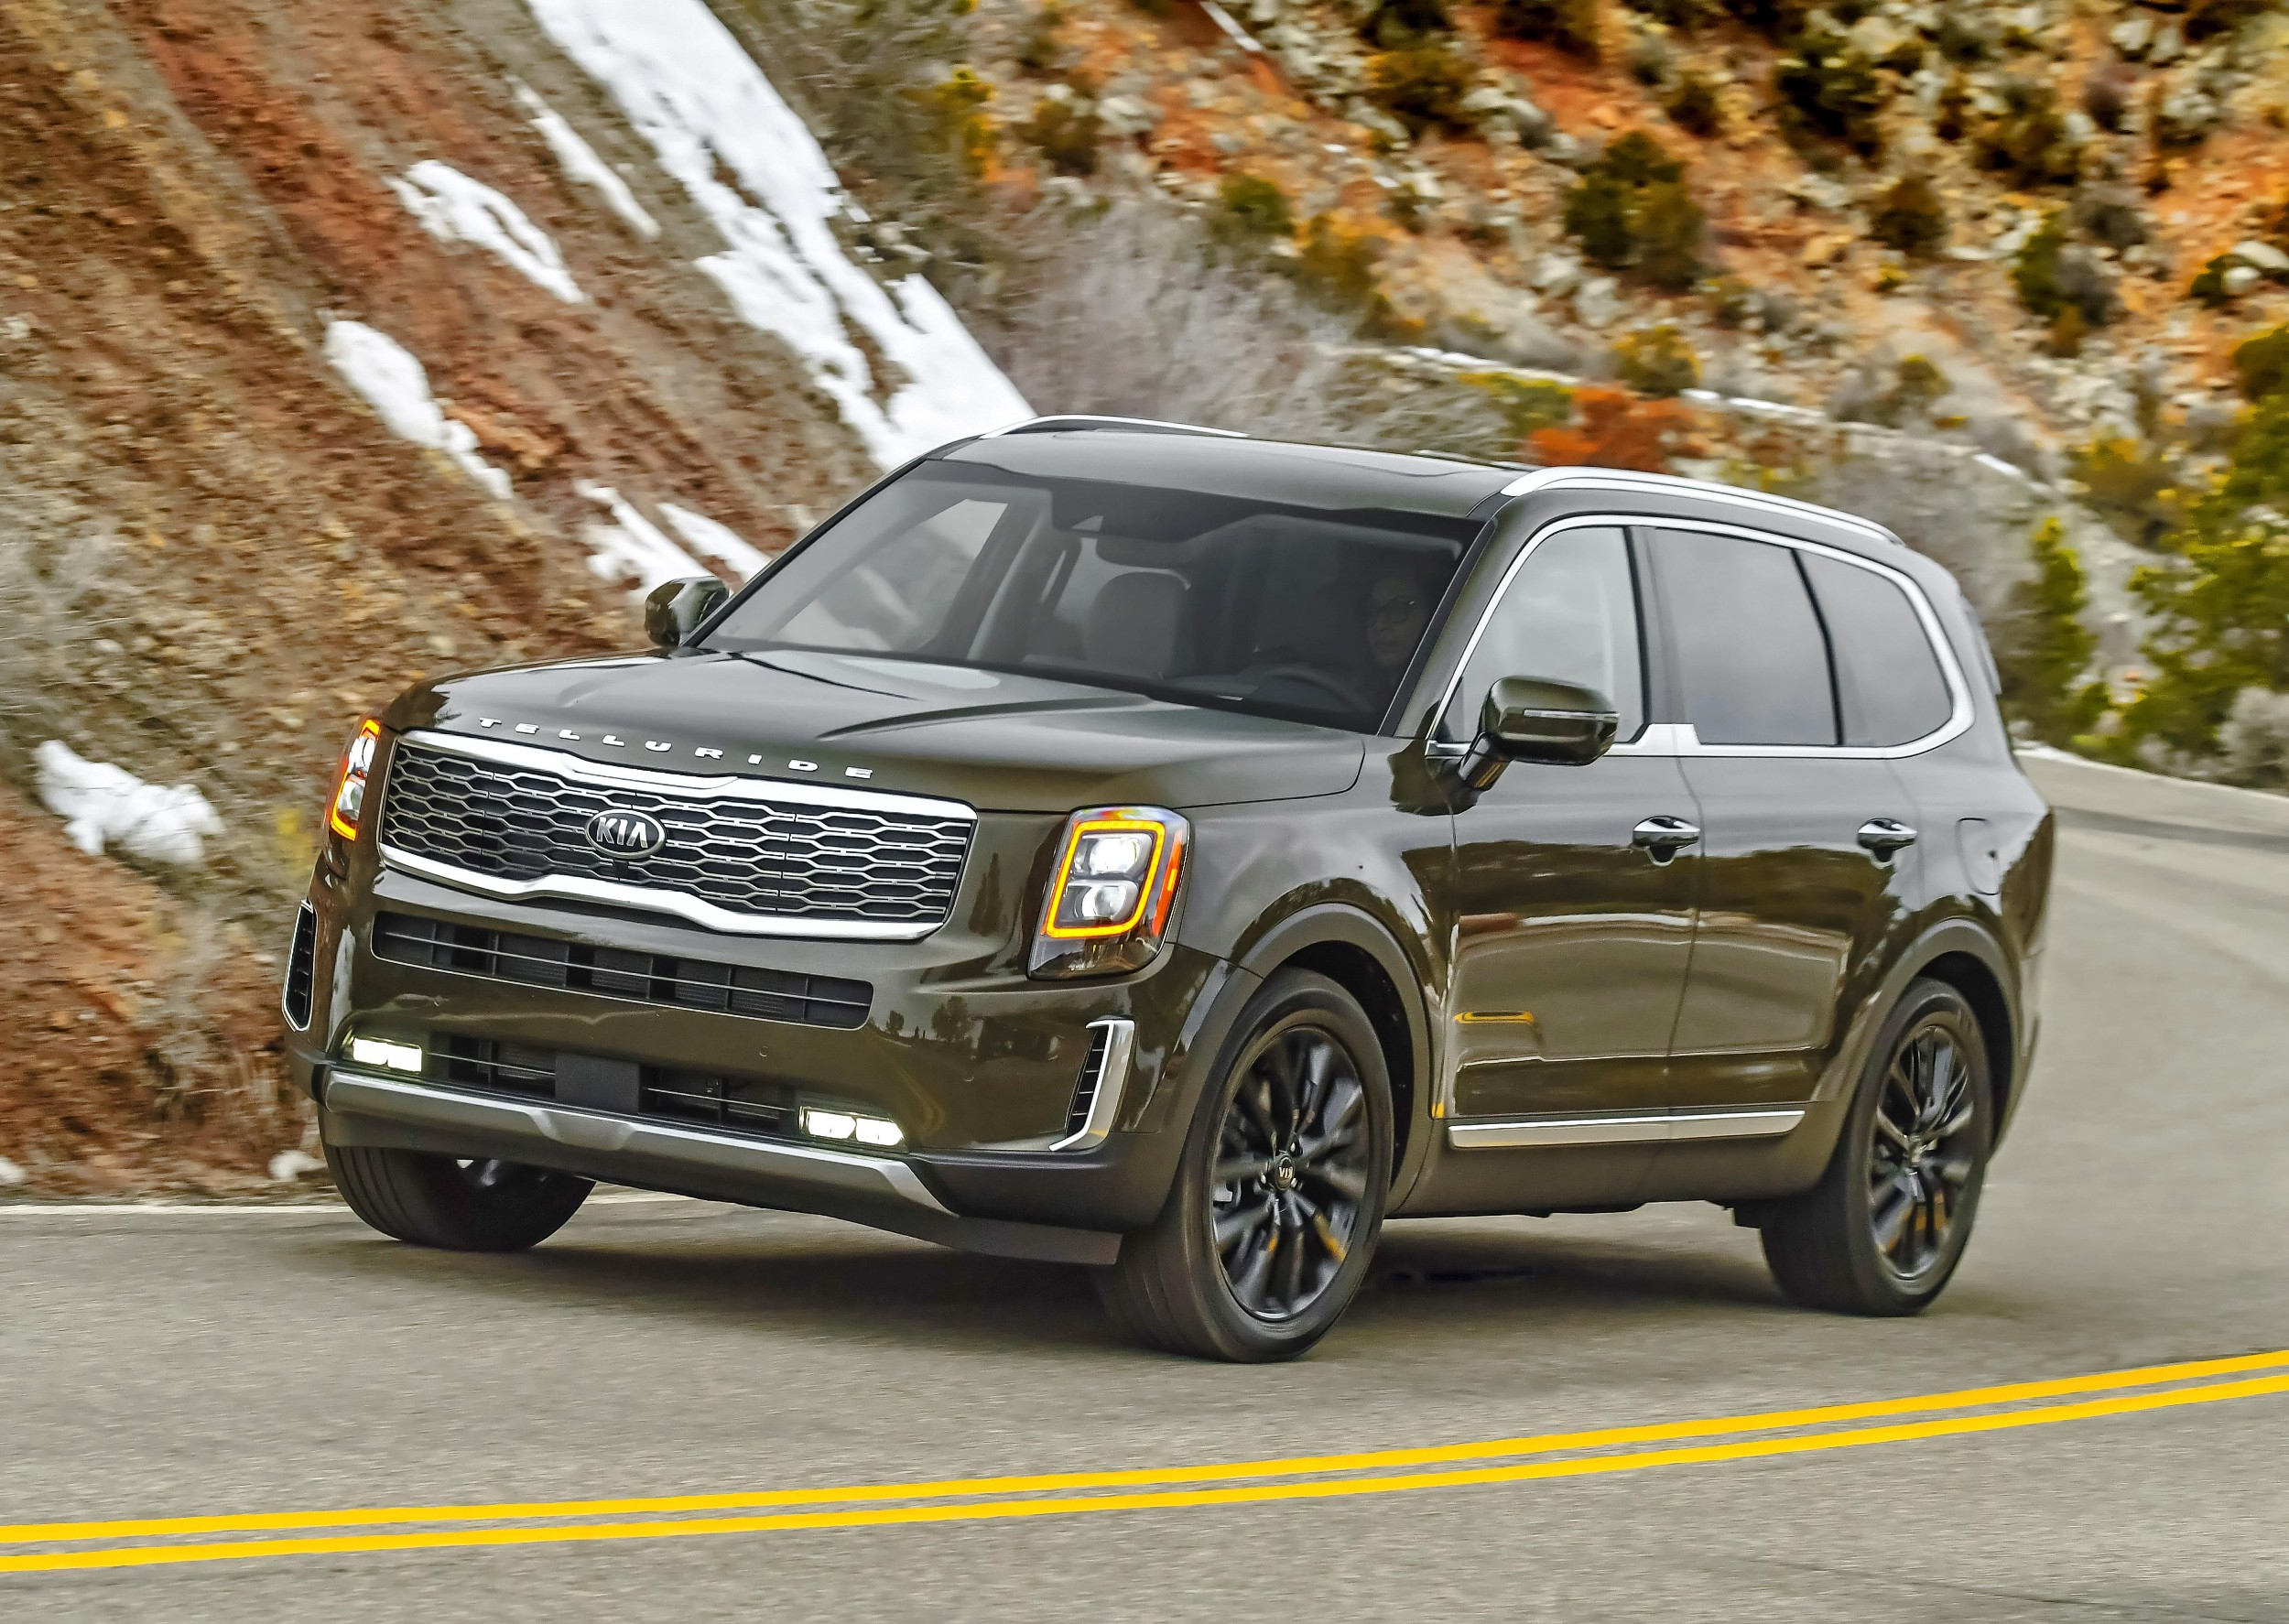 2021 Kia Telluride All Black Release Date, Color Changes ...